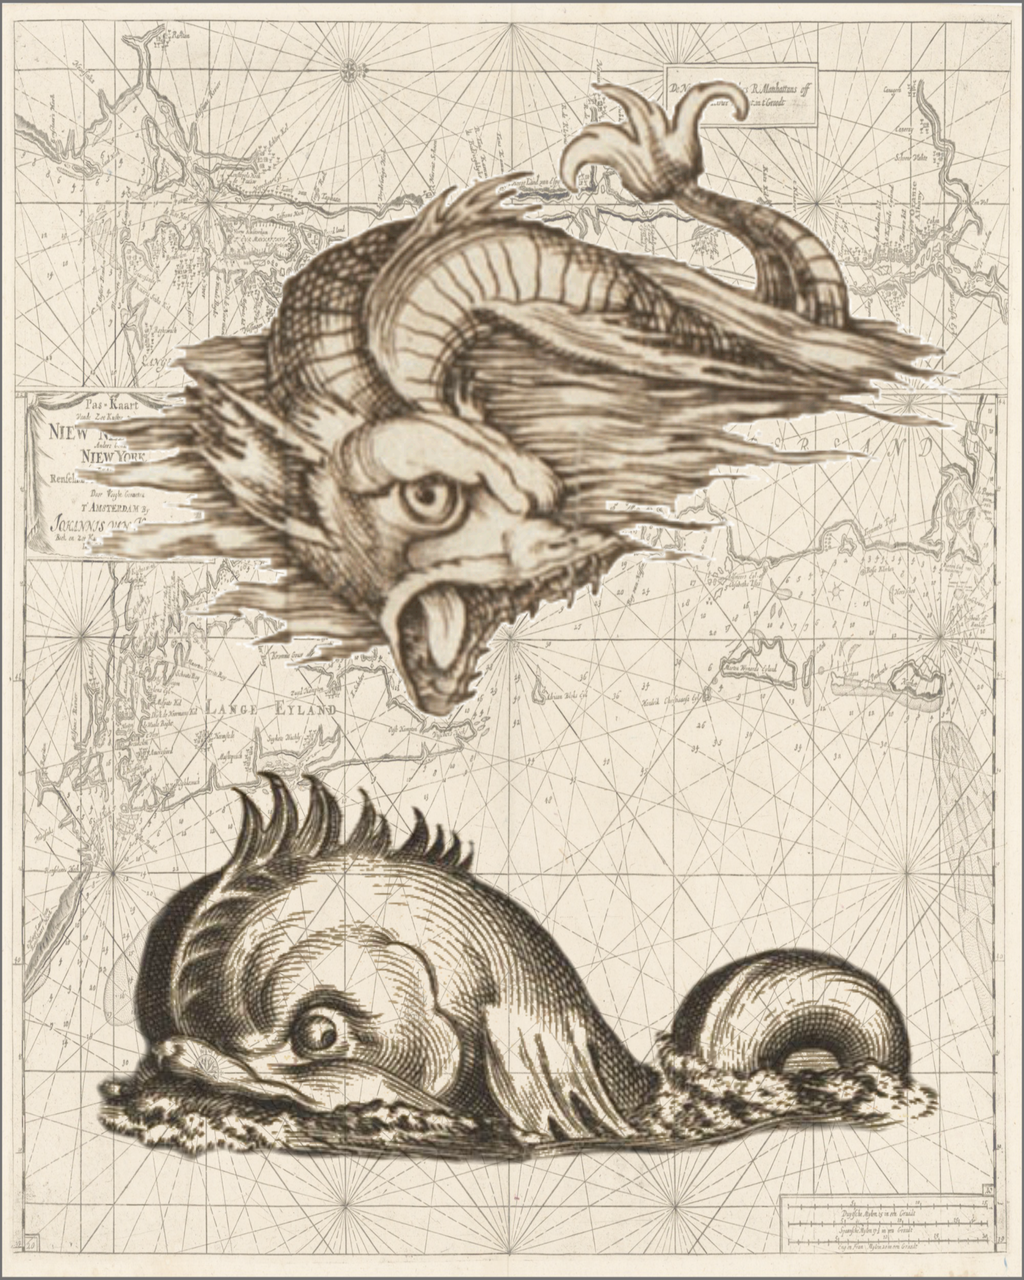 Pin By Mark Freeman On Nautical Drawings Paintings Images And Sketches Sea Monster Art Pirate Art Pirates Illustration